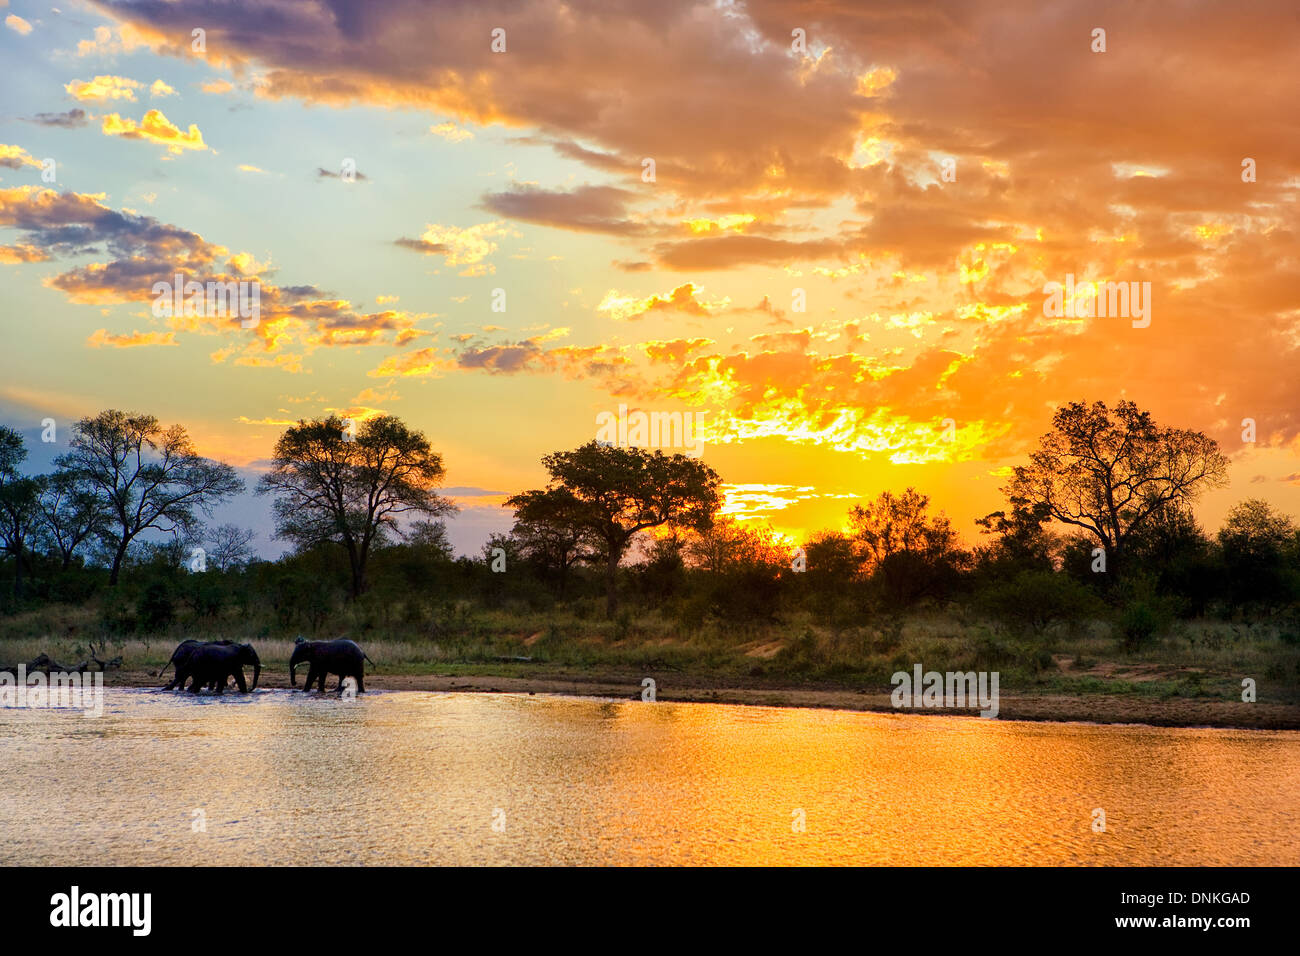 Iconic African sunset at Jones Dam with a herd of elephants  in Kruger National Park in South Africa Stock Photo